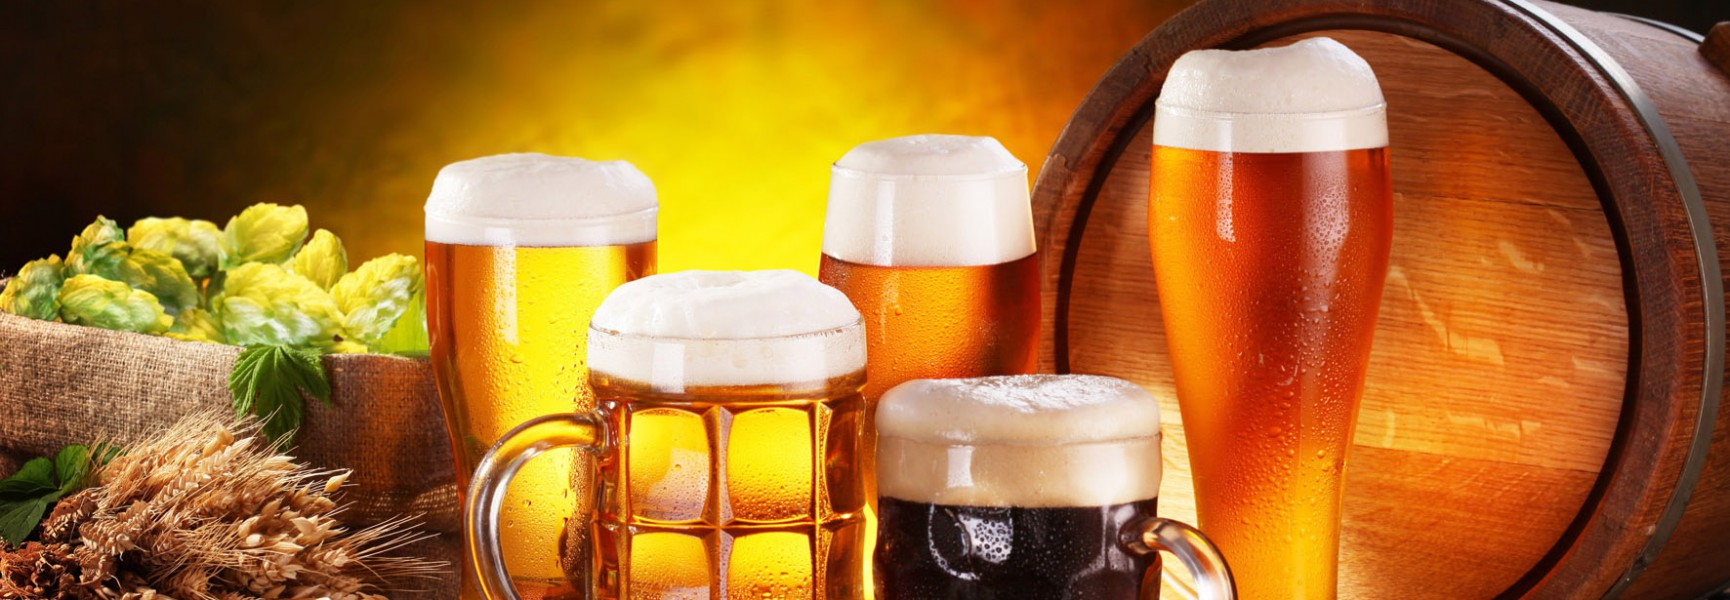 beer attraction 1730x600